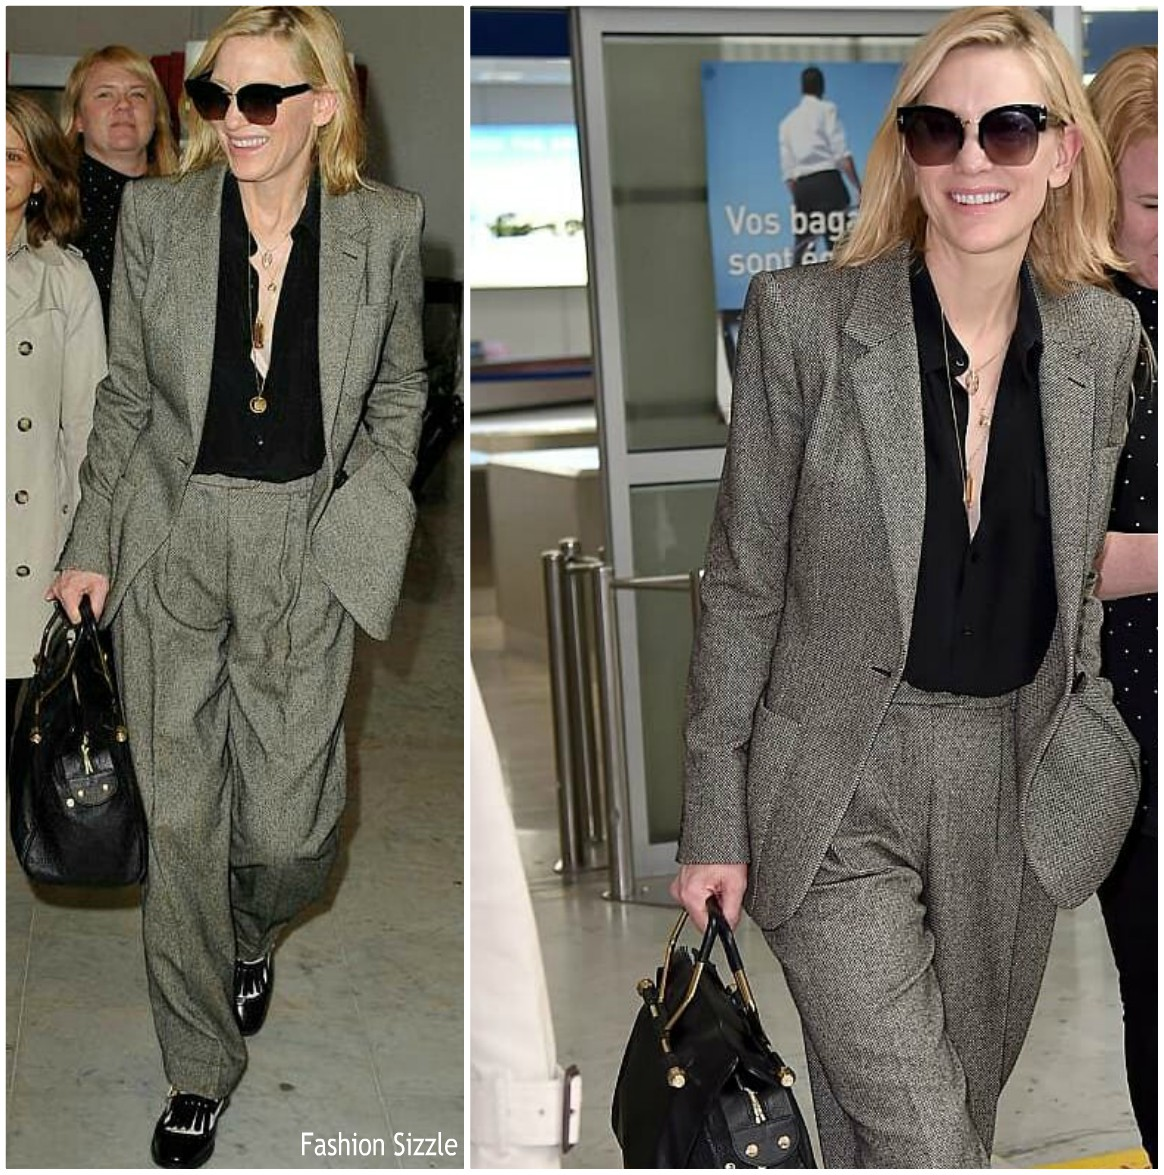 cate-blanchett-arrives-at-nice-airport-france-for-cannes-film-festival